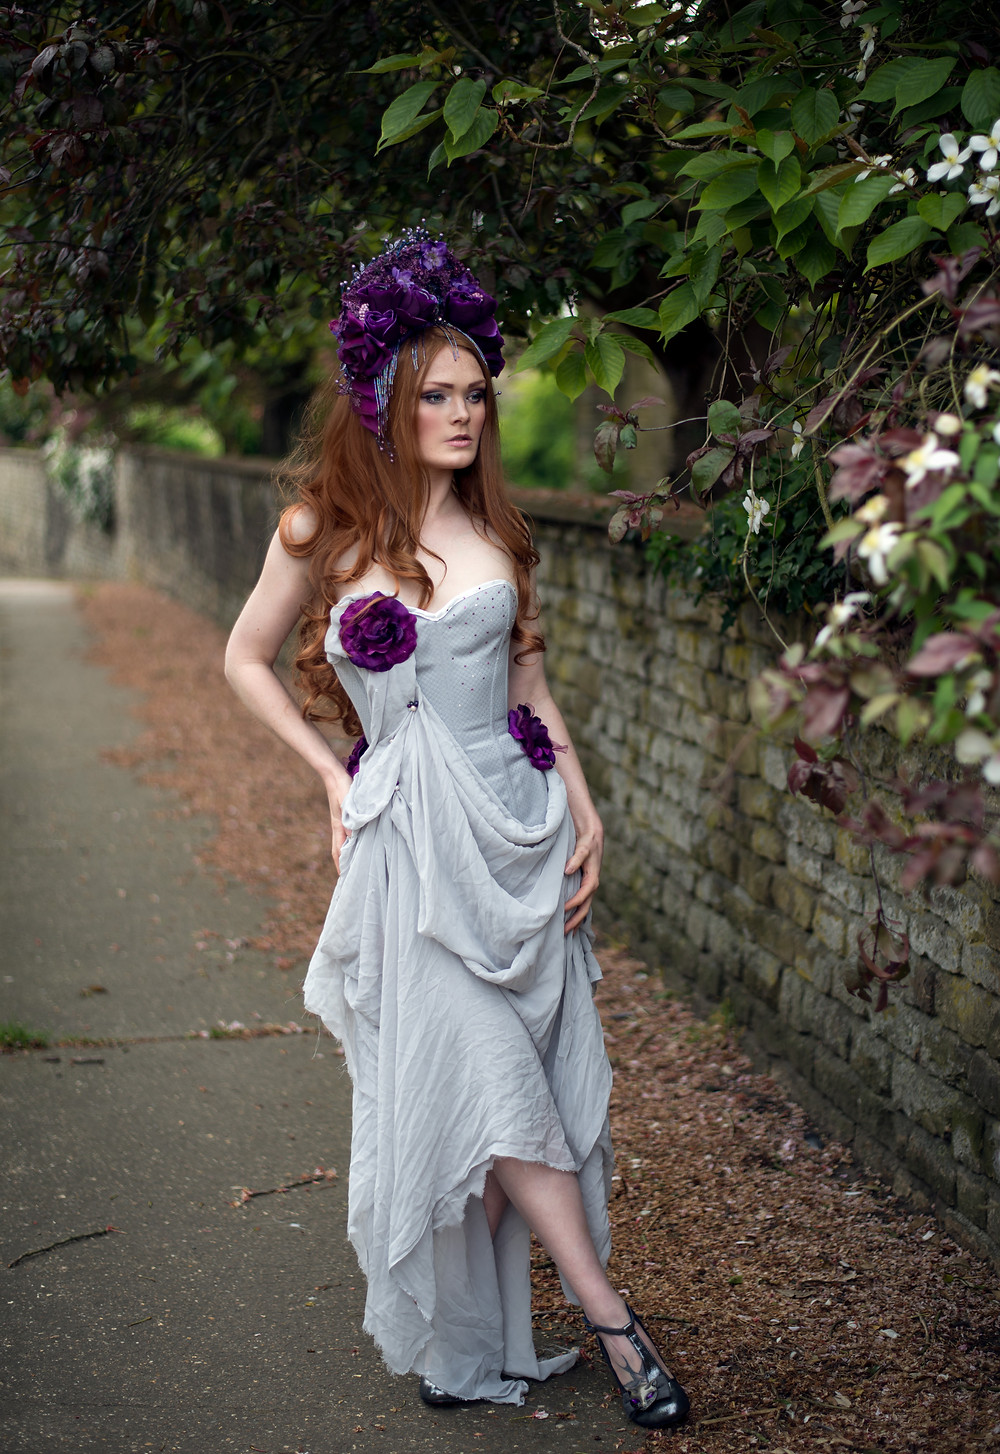 credit Photography: Photography By Liv Free, Model: Gingerface Model, Headdress: Creations by Liv Free